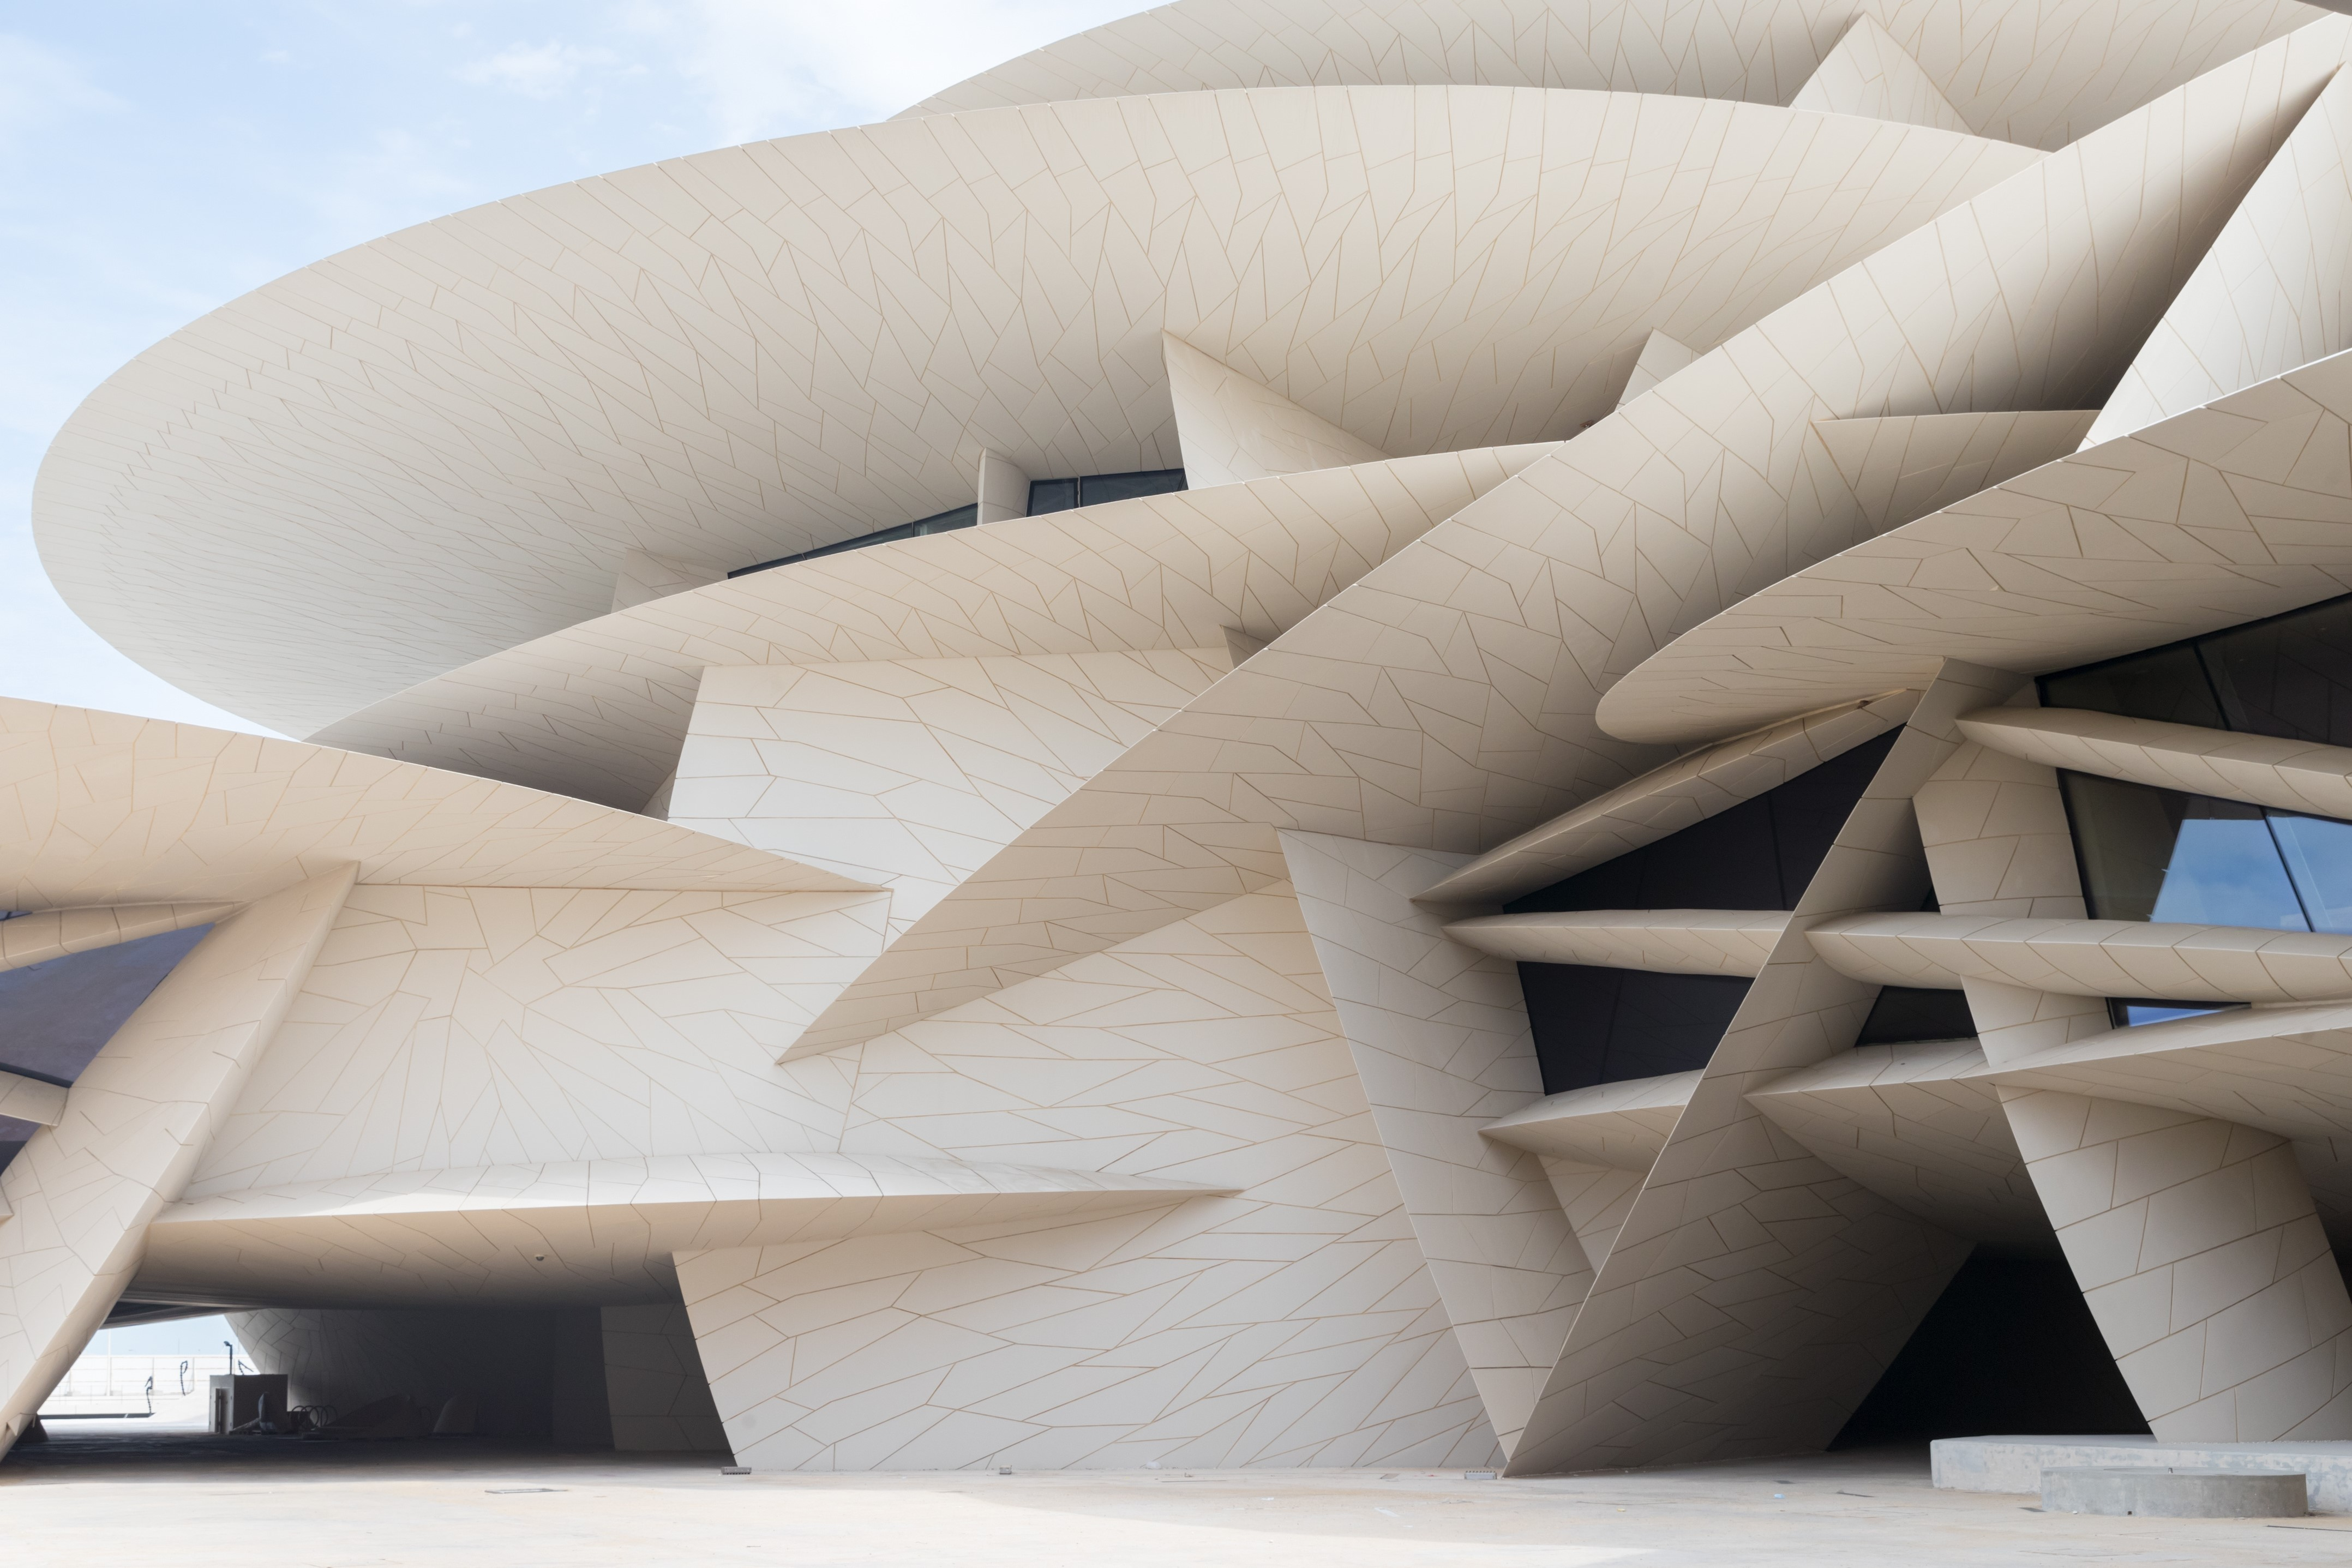 National Museum of Qatar, designed by Ateliers Jean Nouvel, Photo by Iwan Baan